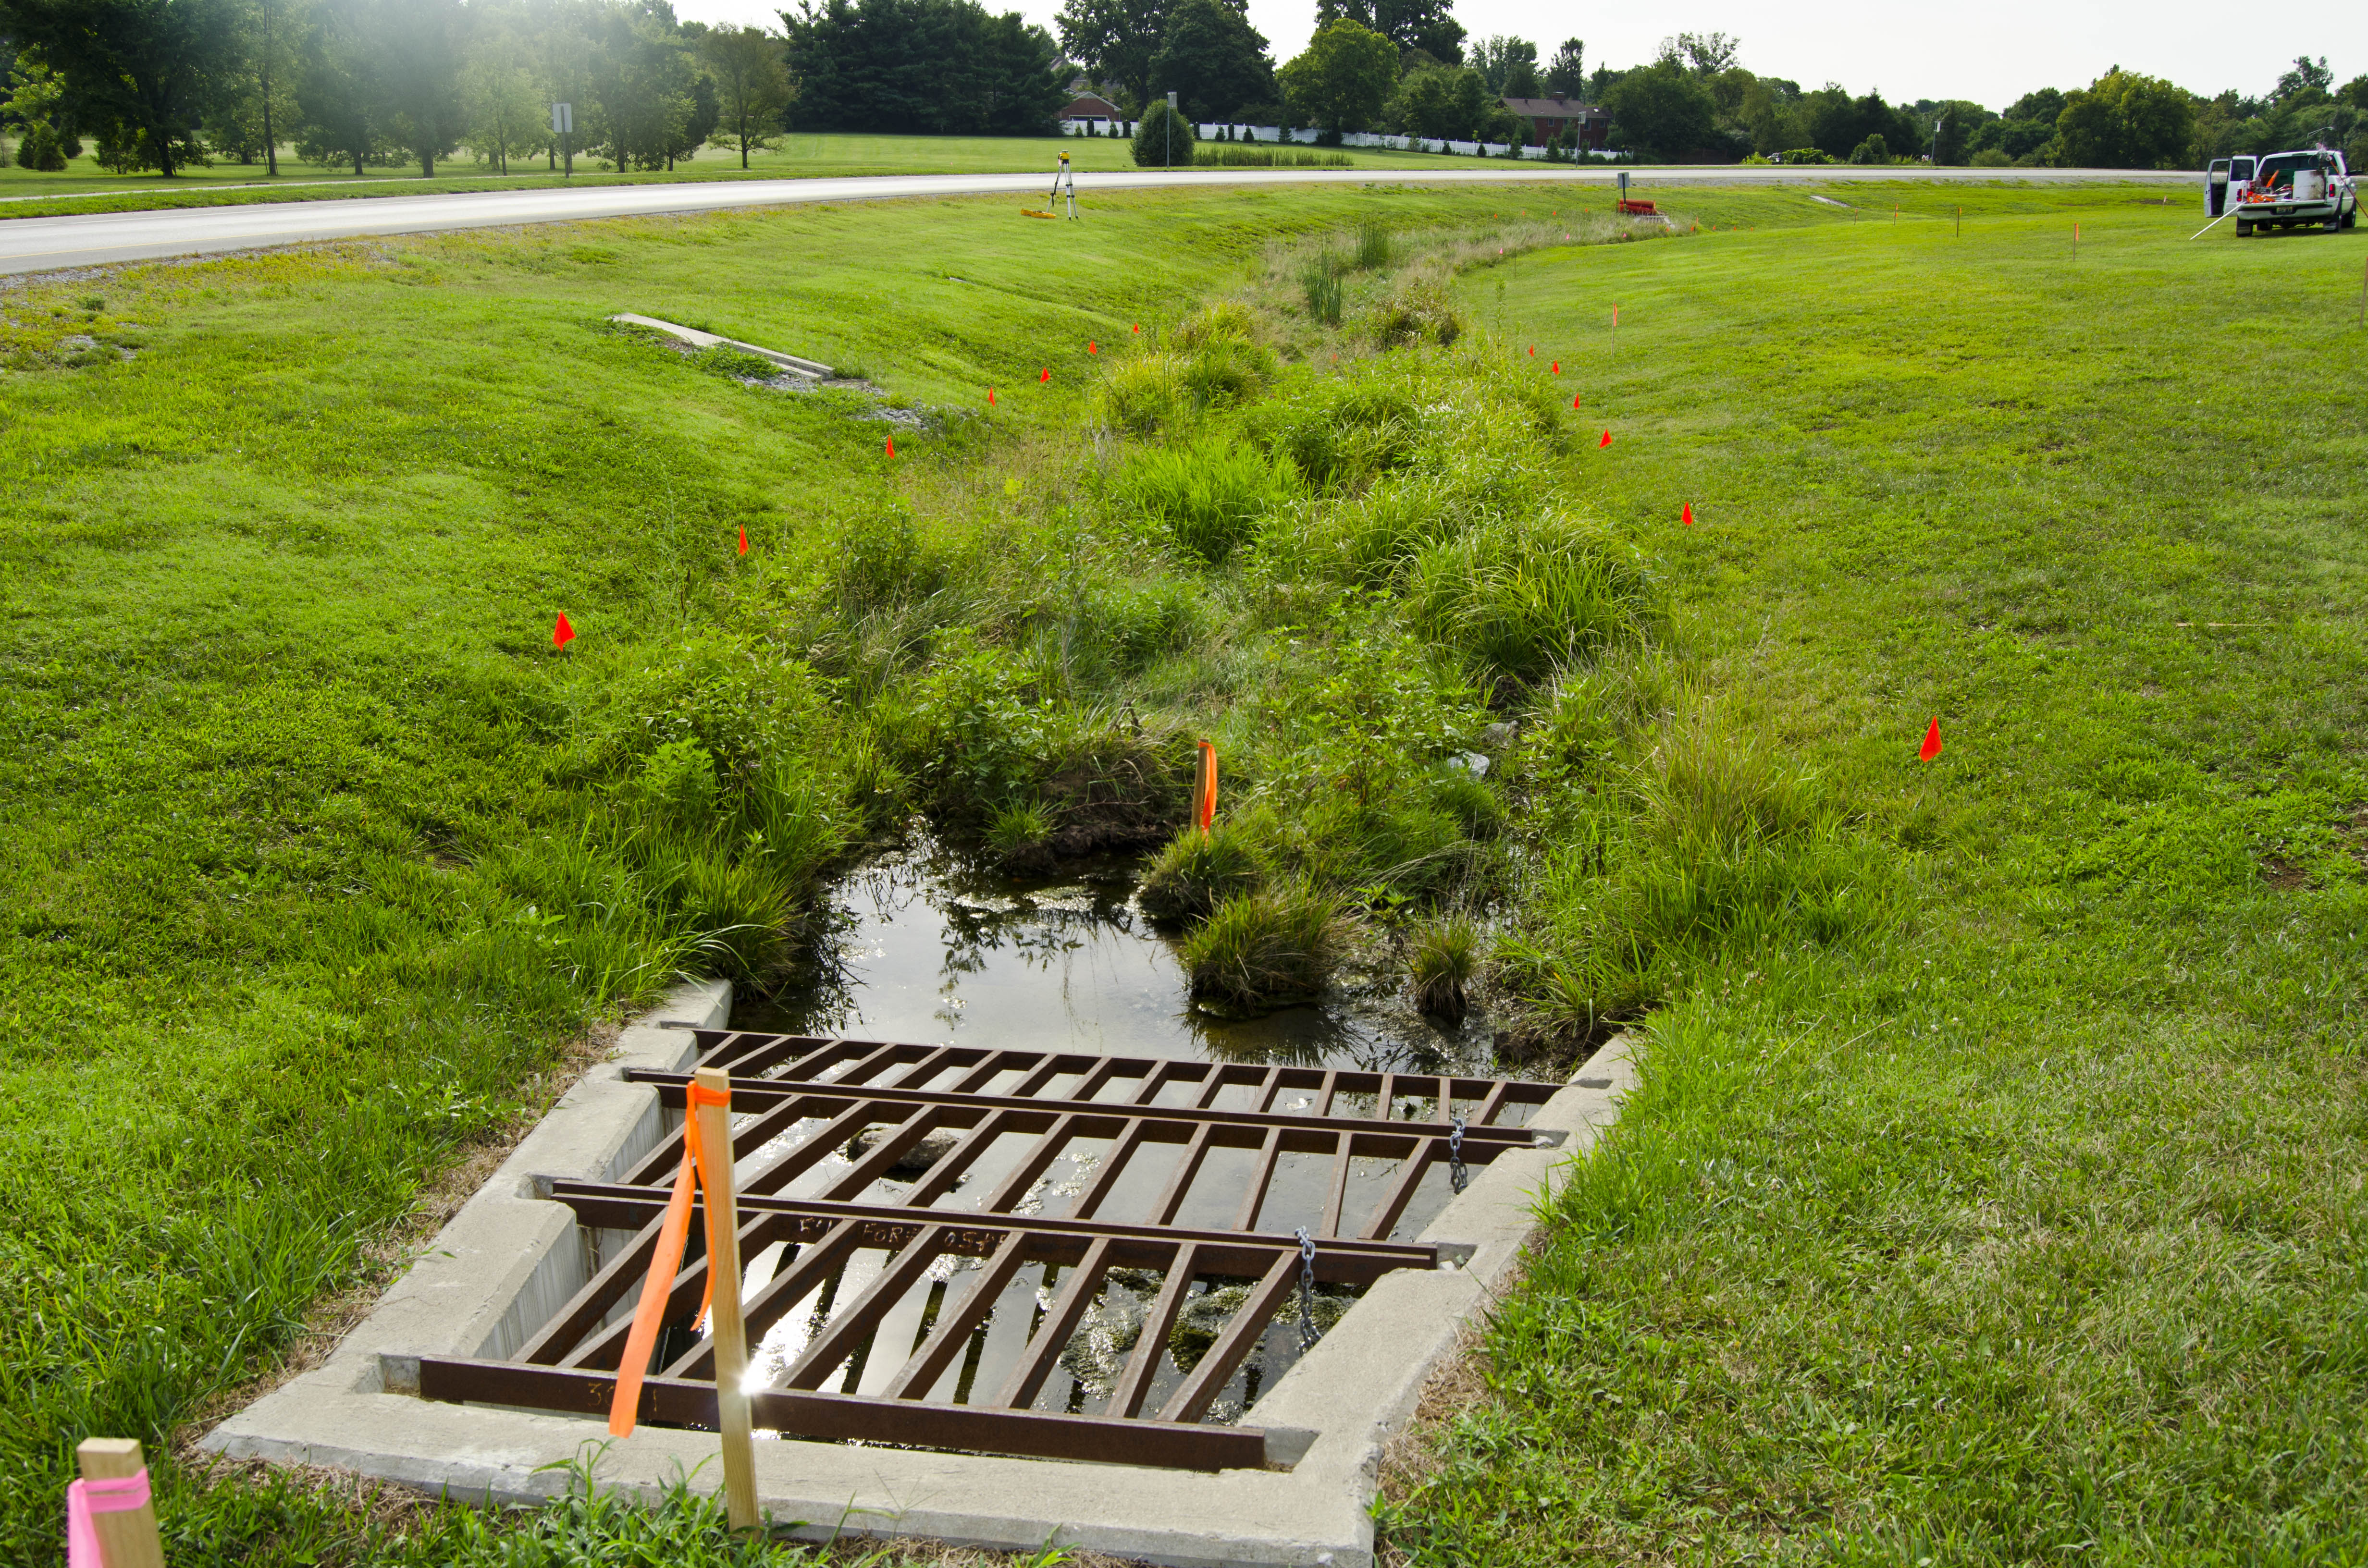 UK stream restoration project to improve water quality, provide outdoor classroom for students